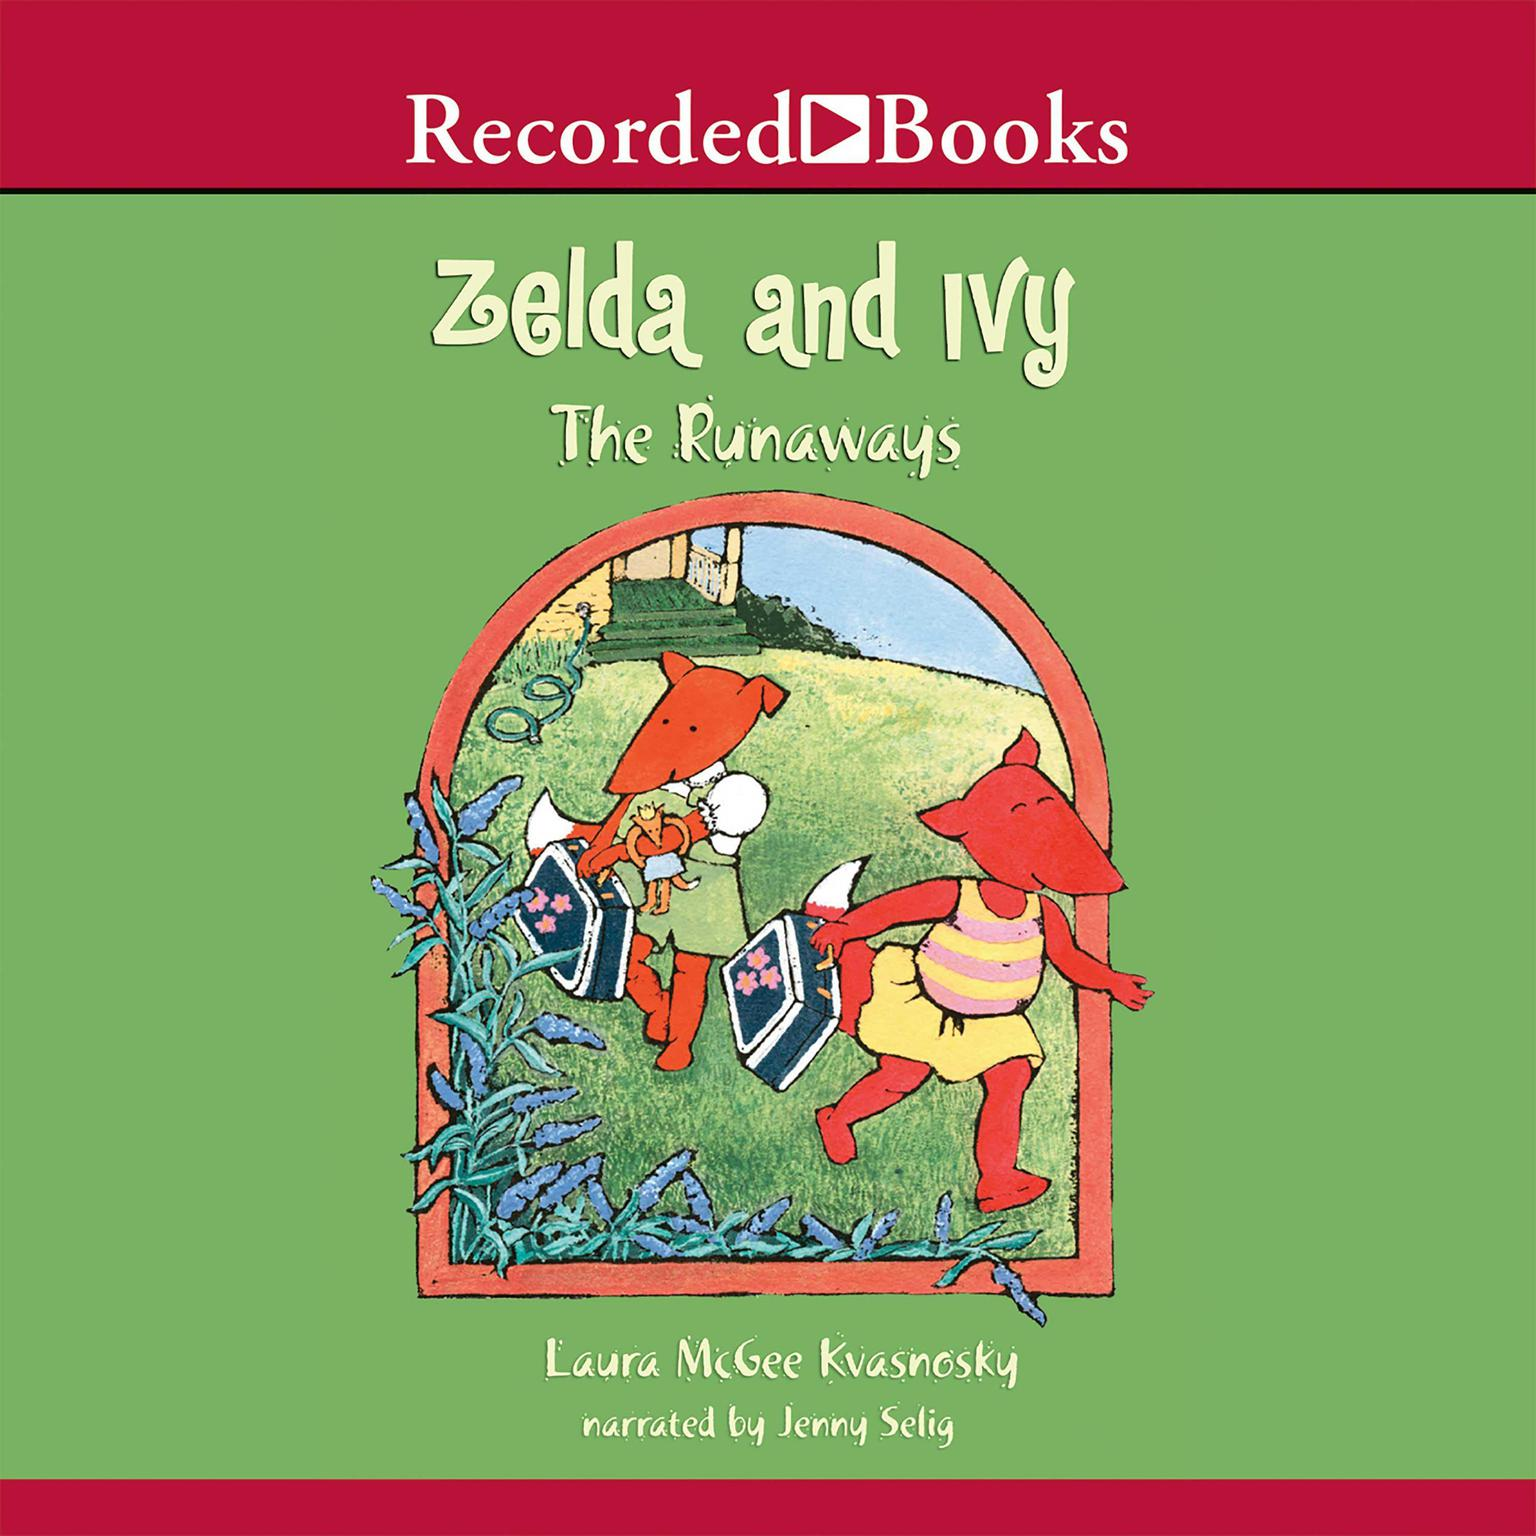 Zelda and Ivy: The Runaways Audiobook, by Laura McGee Kvasnosky